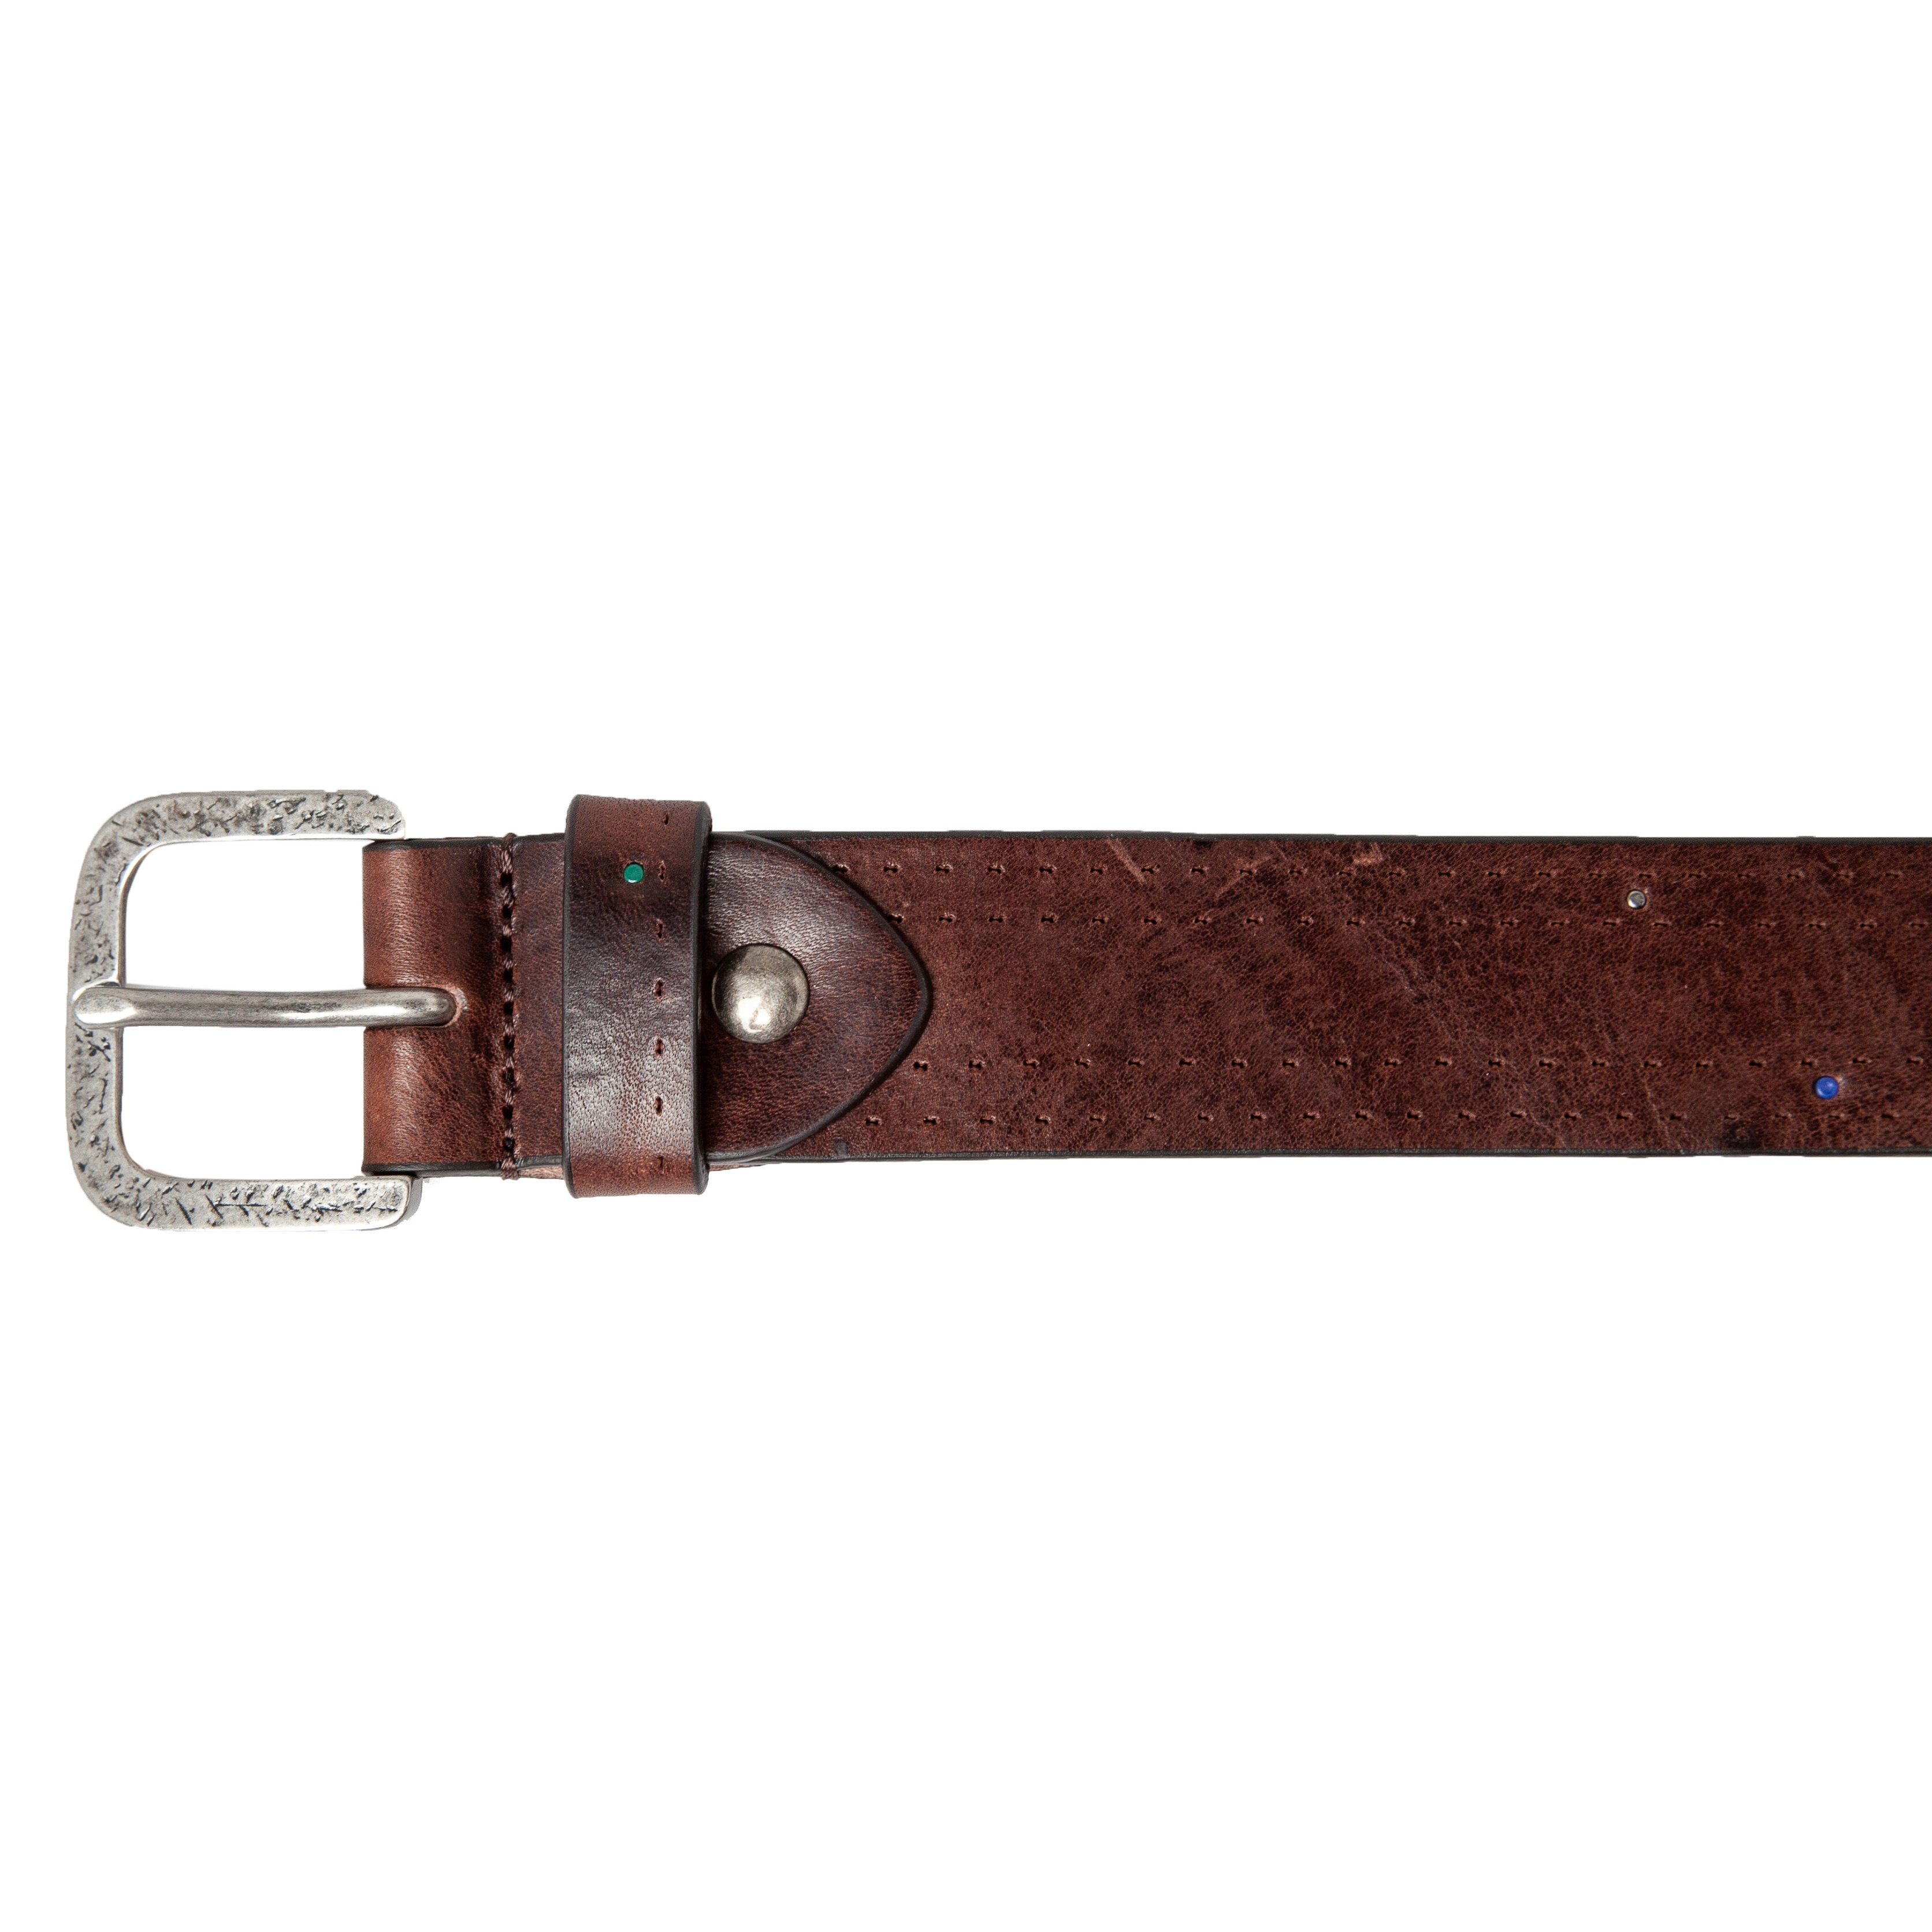 Leather Belt: Old Look Punched